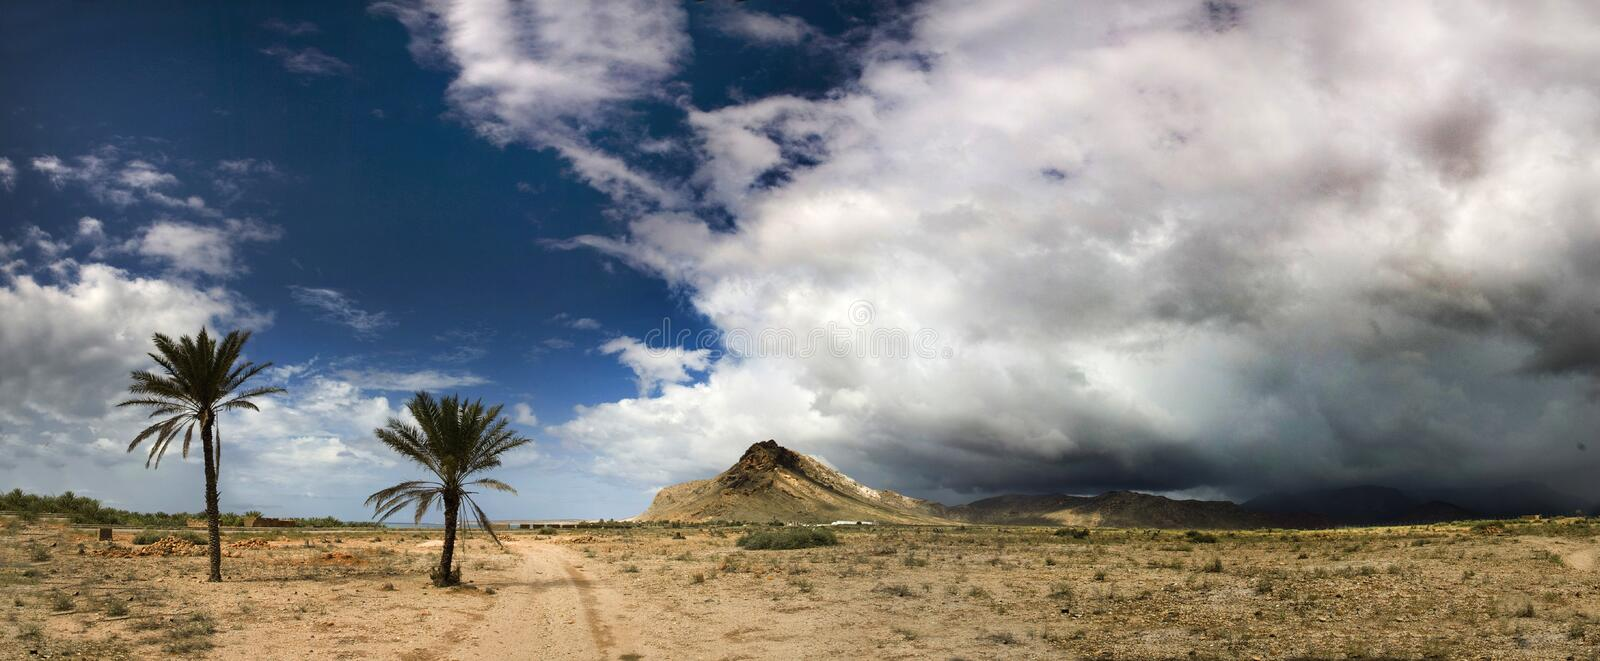 Socotra island landscape royalty free stock photo